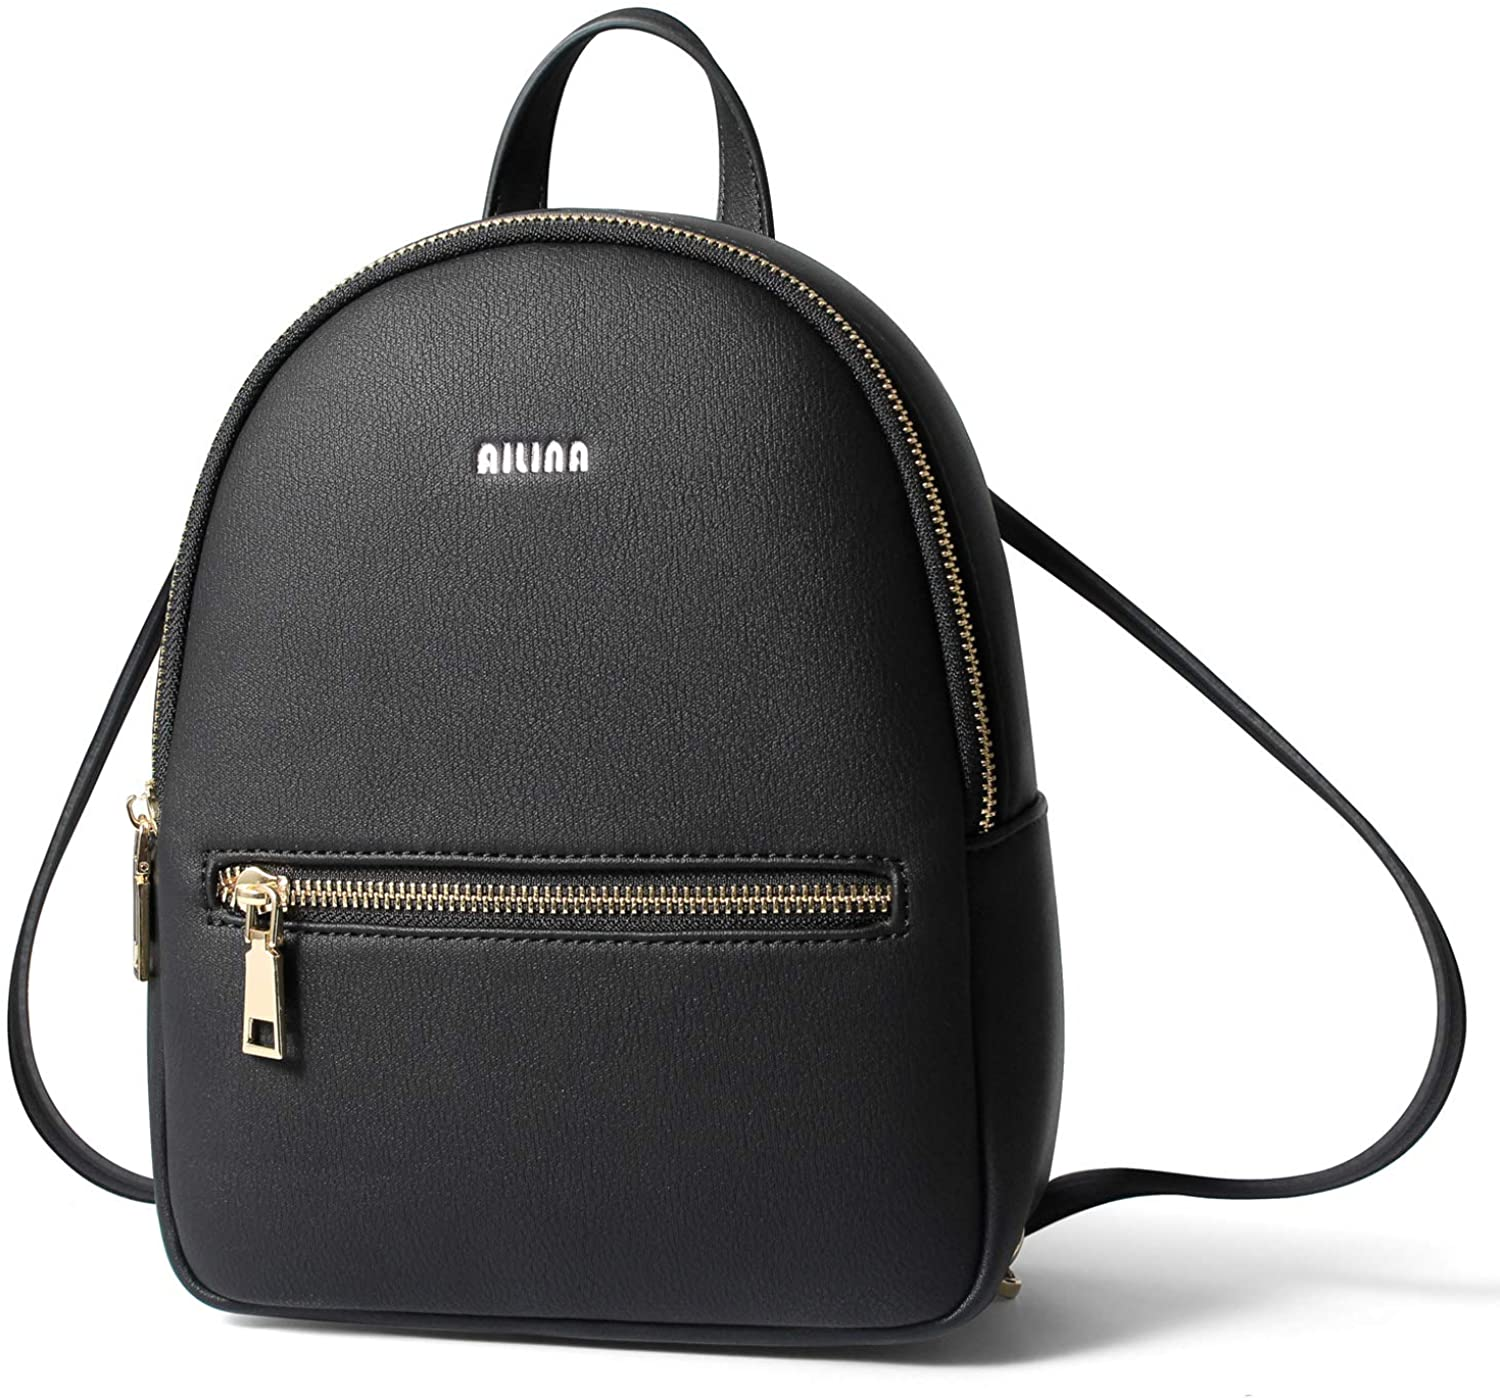 Backpack Purse for Women Fashion Small Daypacks Cute Mini PU Leather Purse and Handbags Shoulder Bags